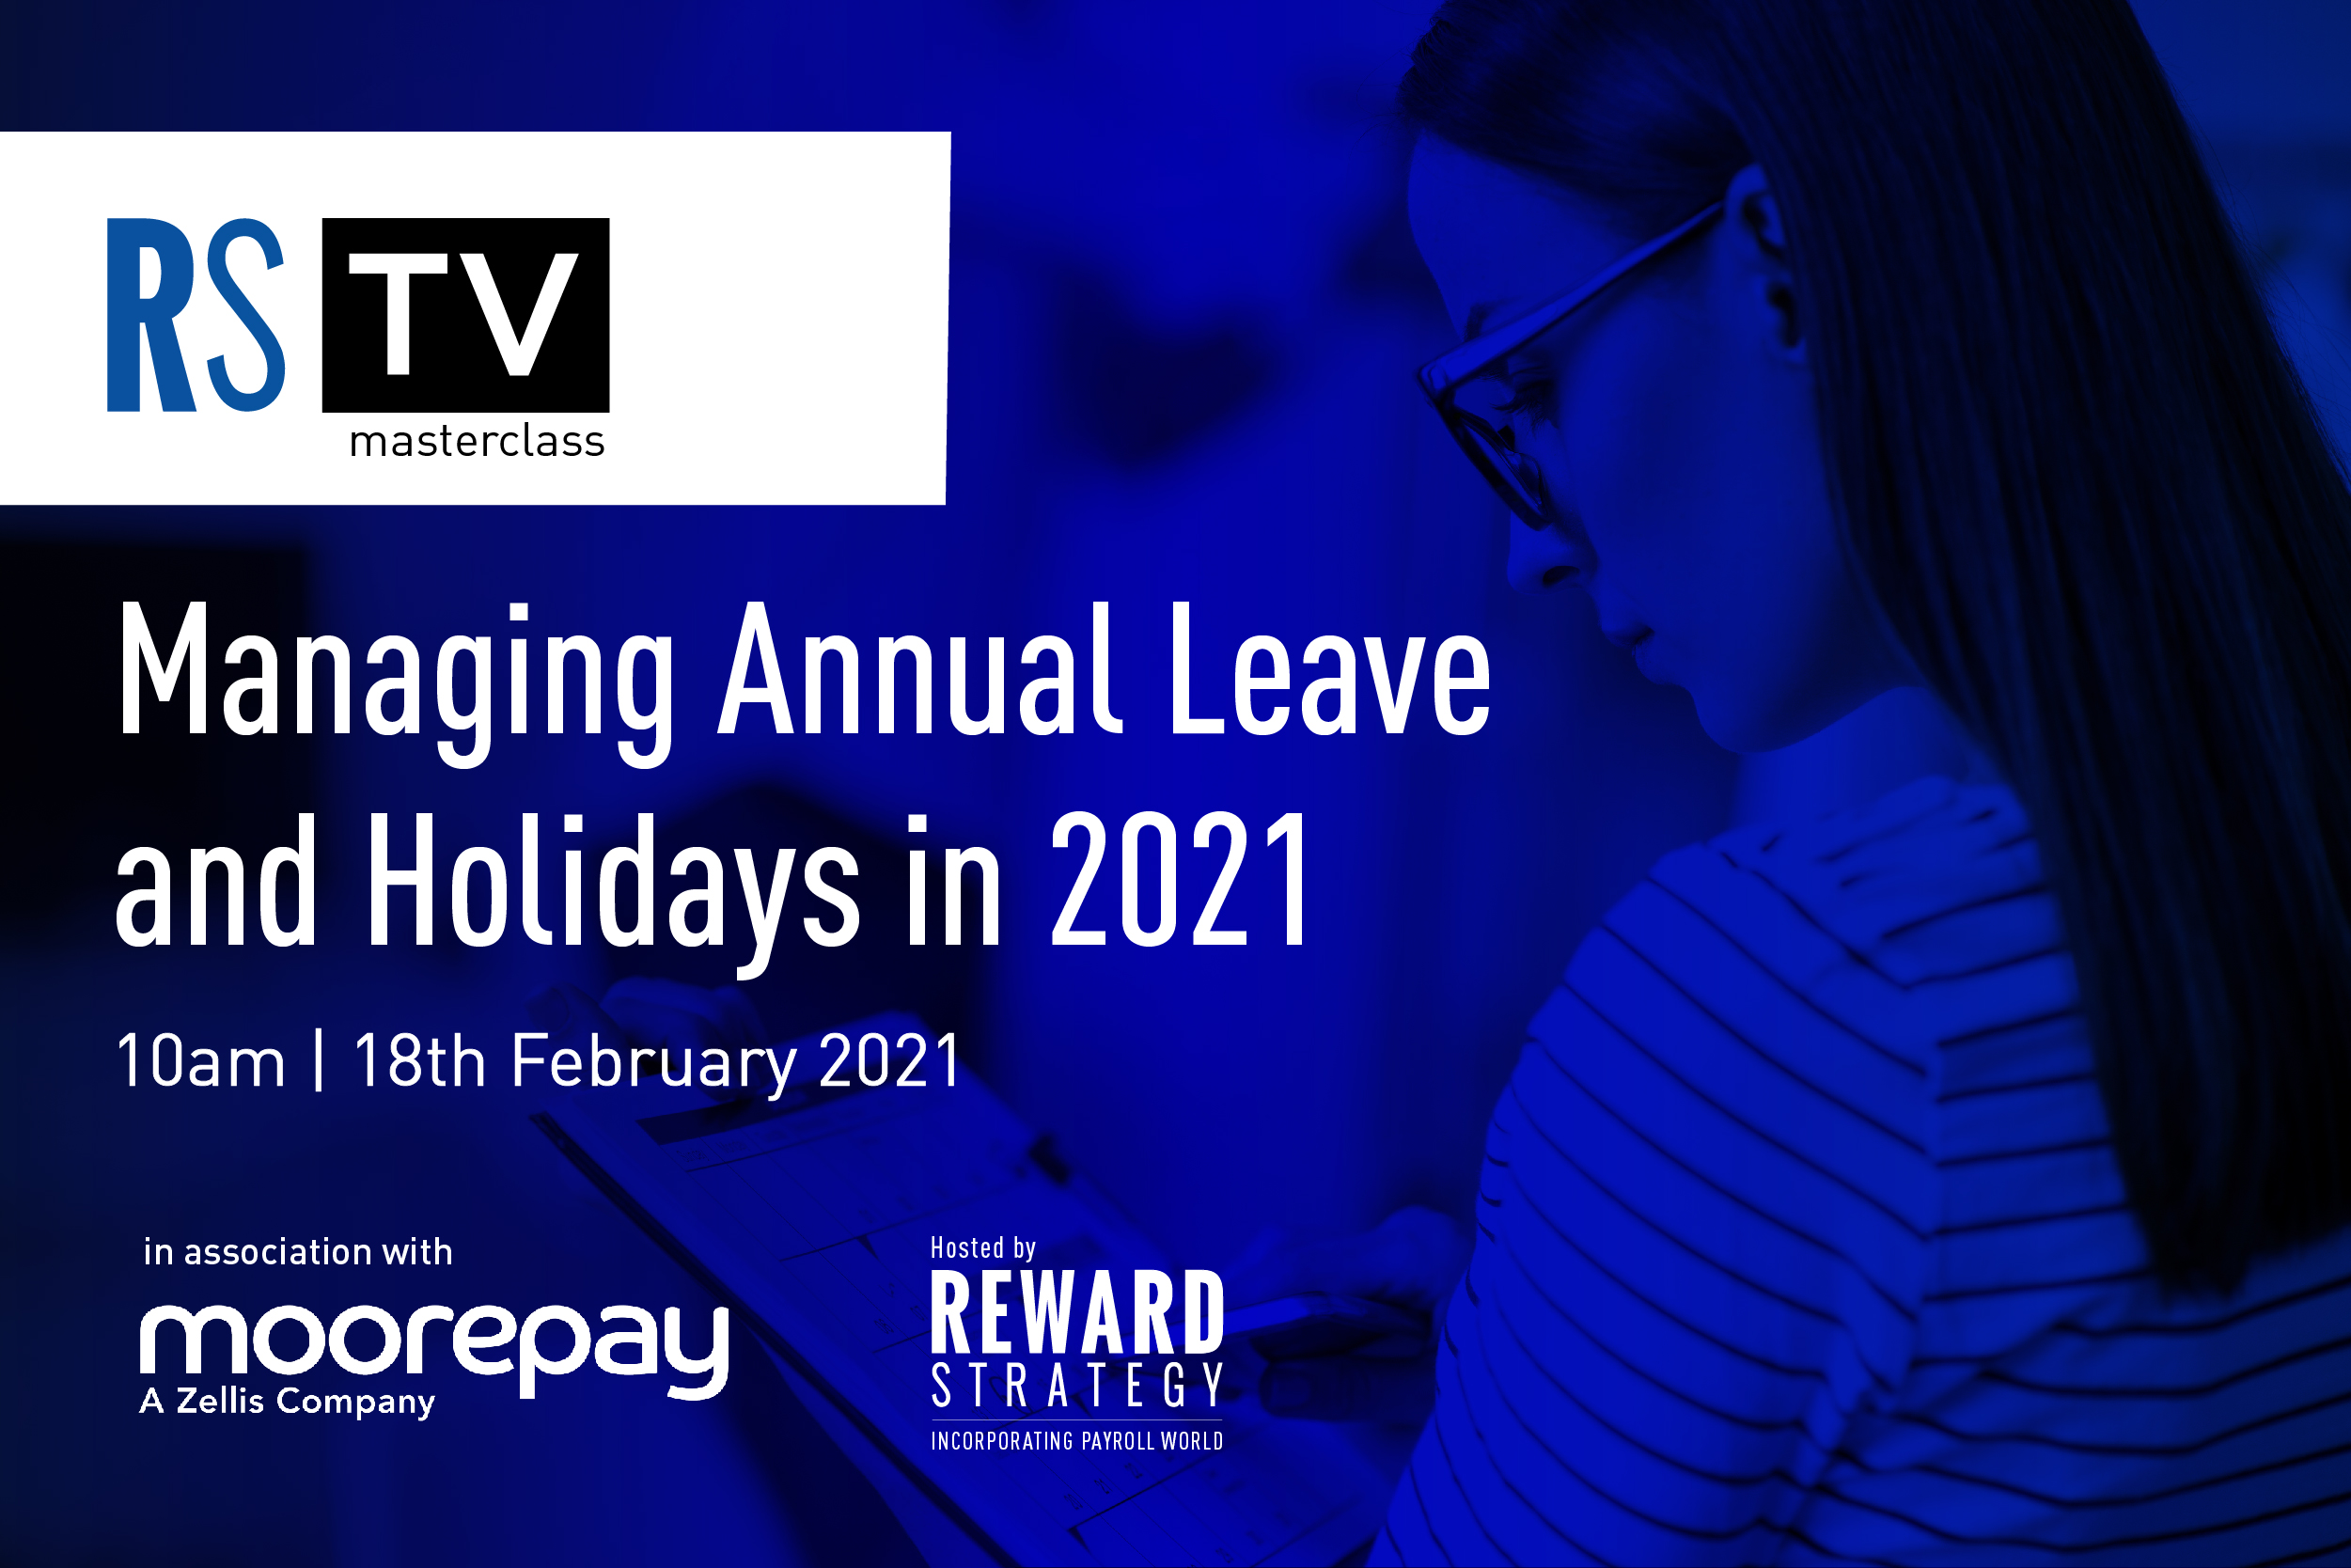 Reward Strategy TV Masterclass: Managing Annual Leave and Holidays in 2021